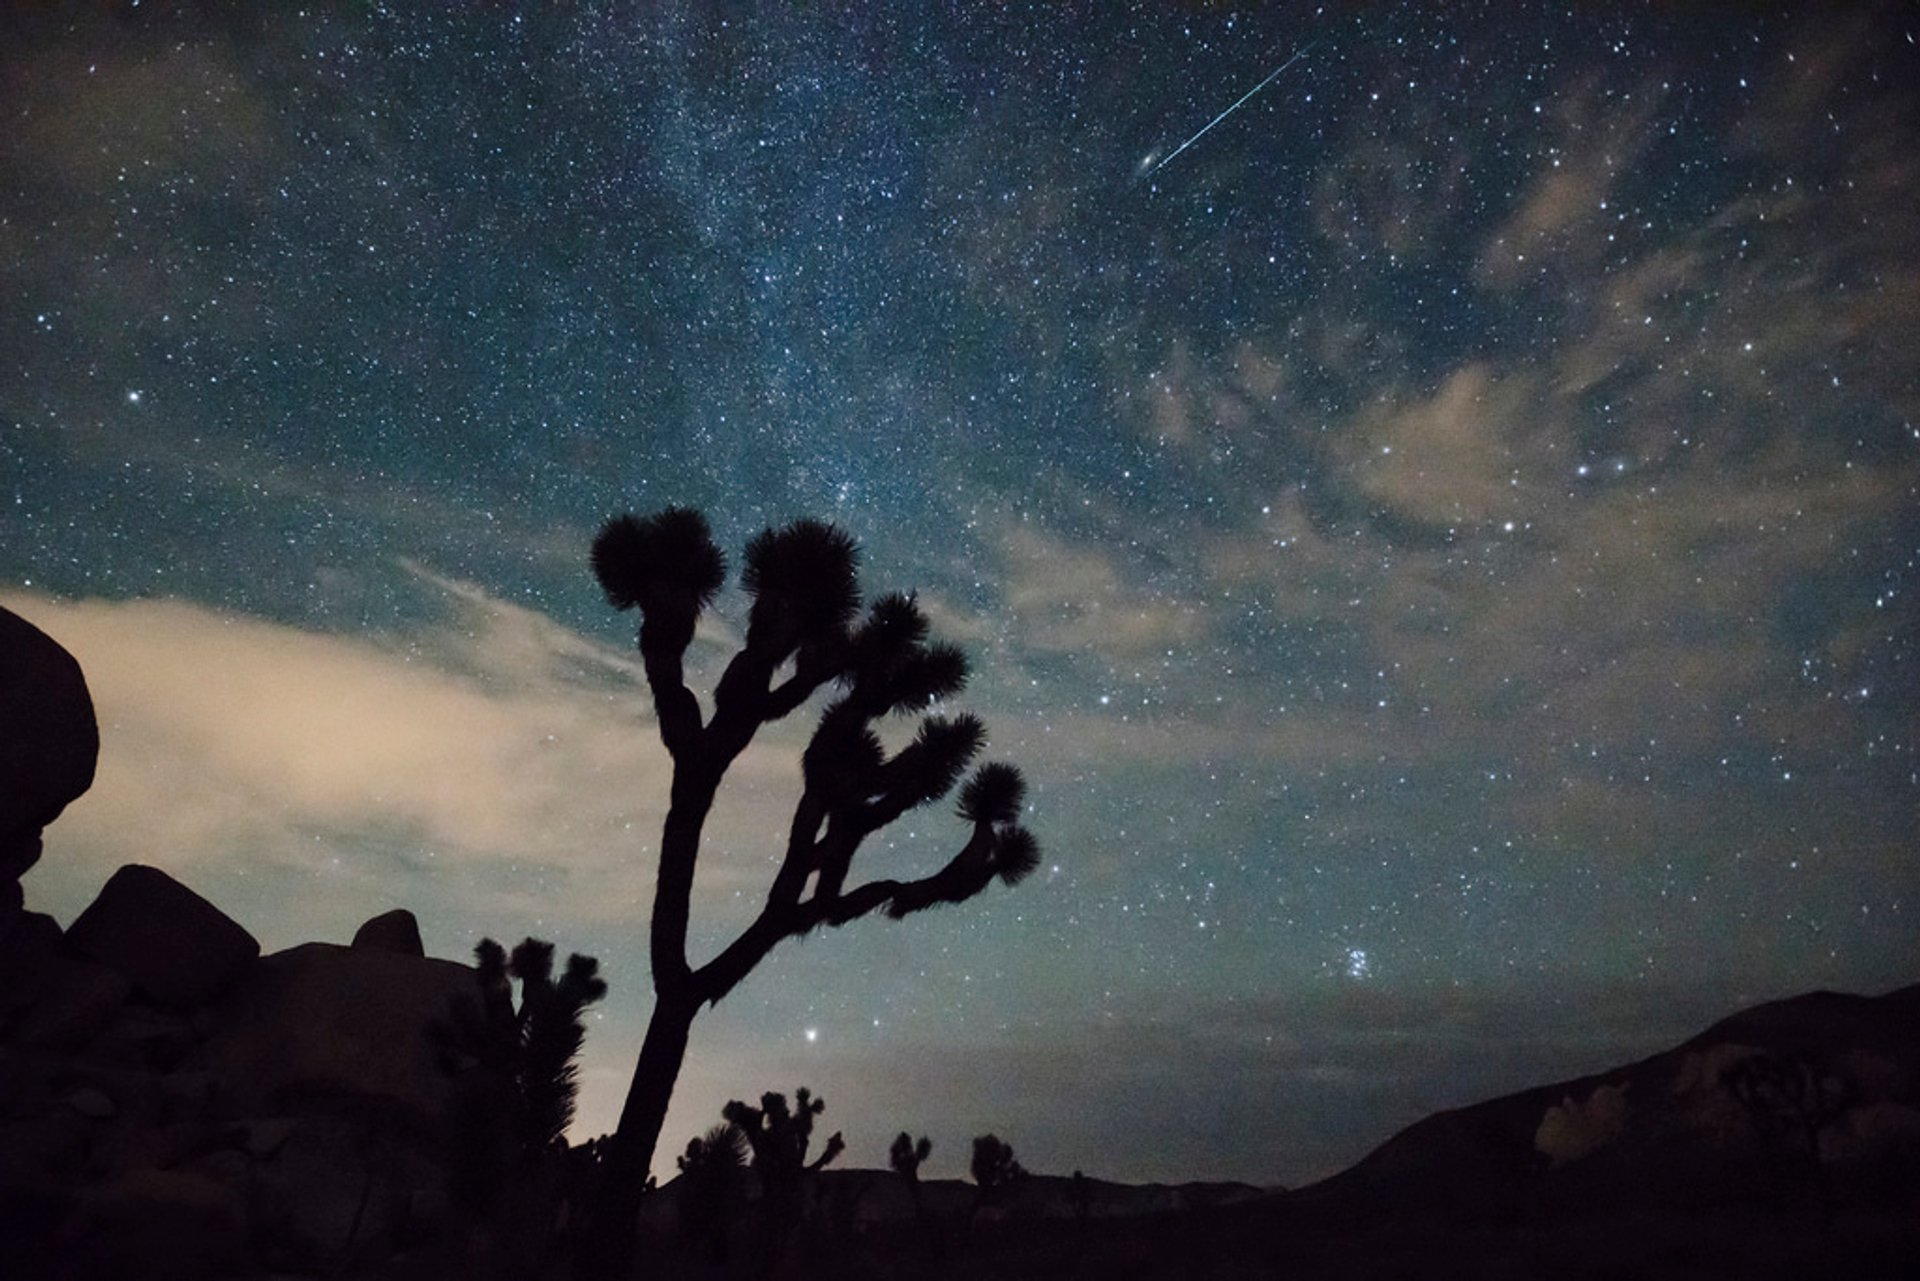 Joshua Tree National Park 2020